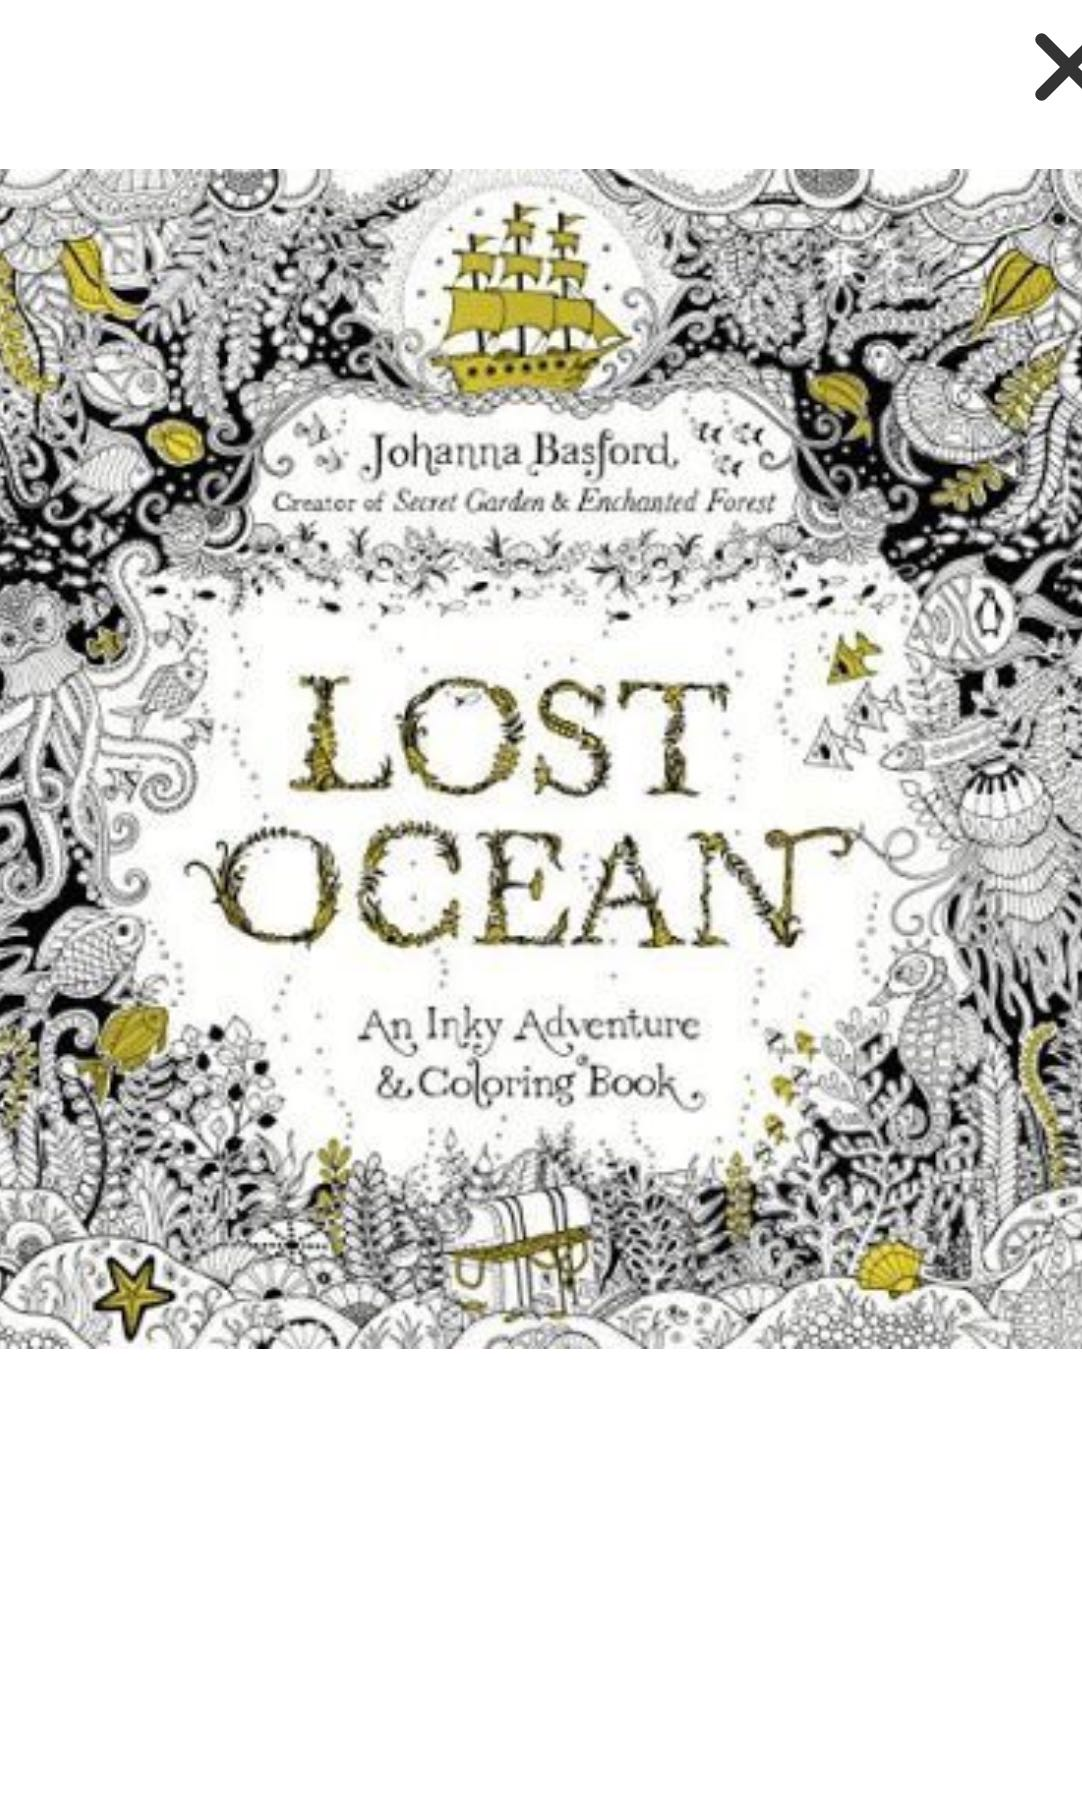 Lost Ocean colouring book, Design & Craft, Art & Prints on Carousell